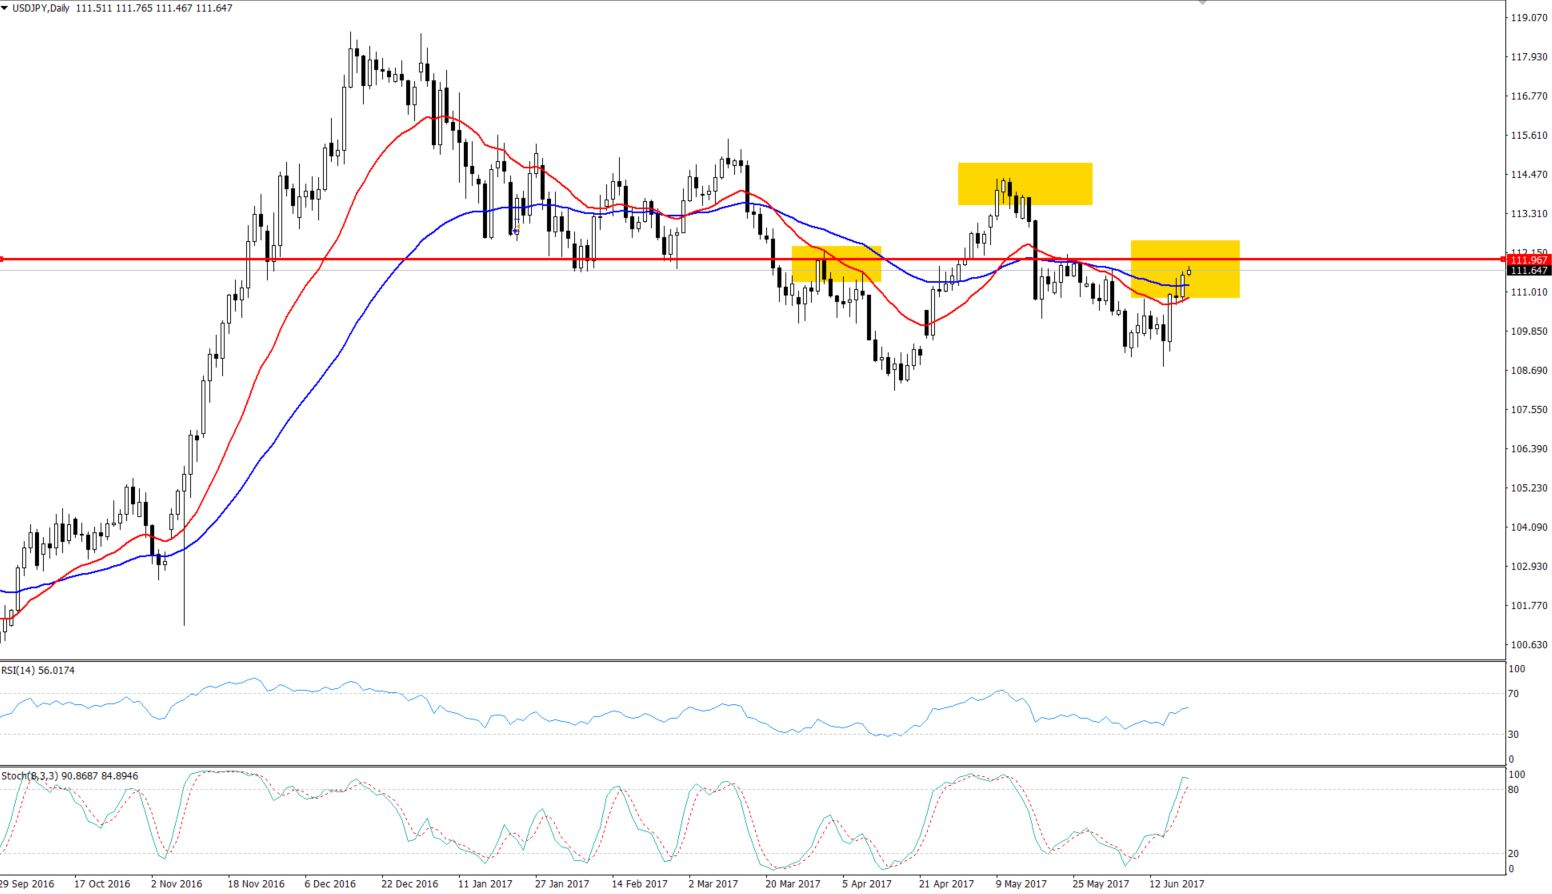 USDJPY Daily Chart - Head & Shoulder Pattern